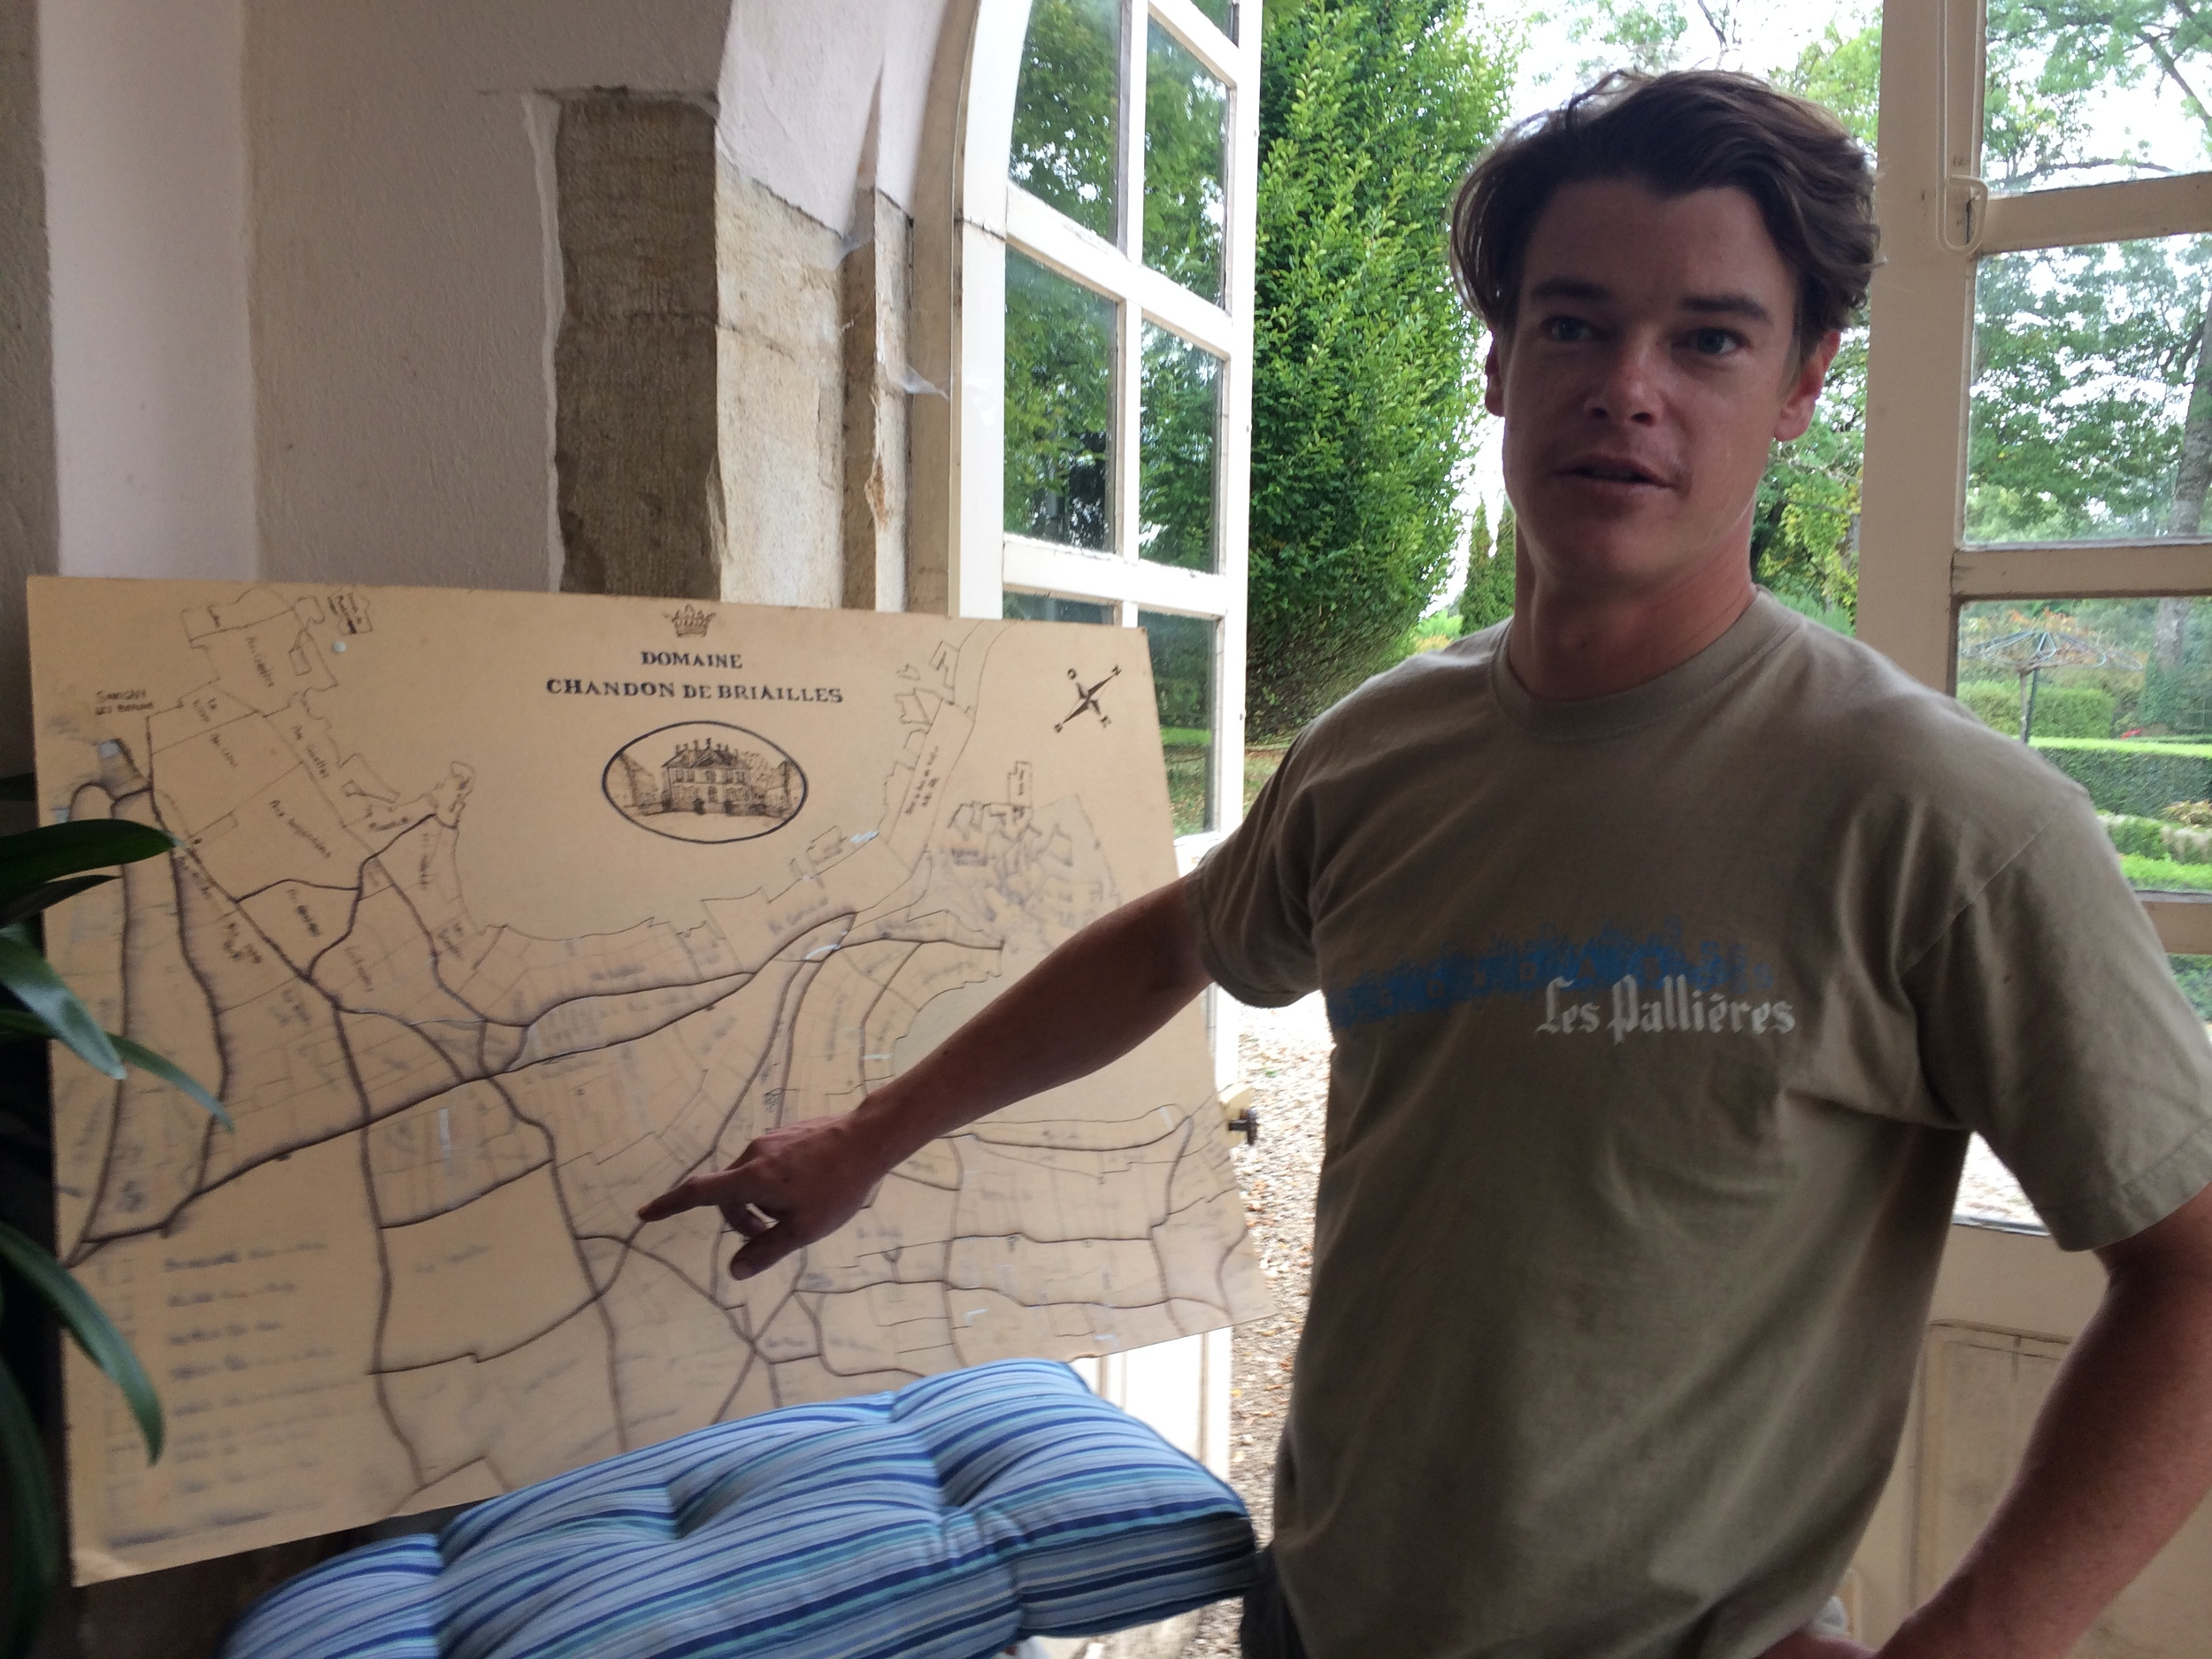 Getting schooled on the Domaine's parcels